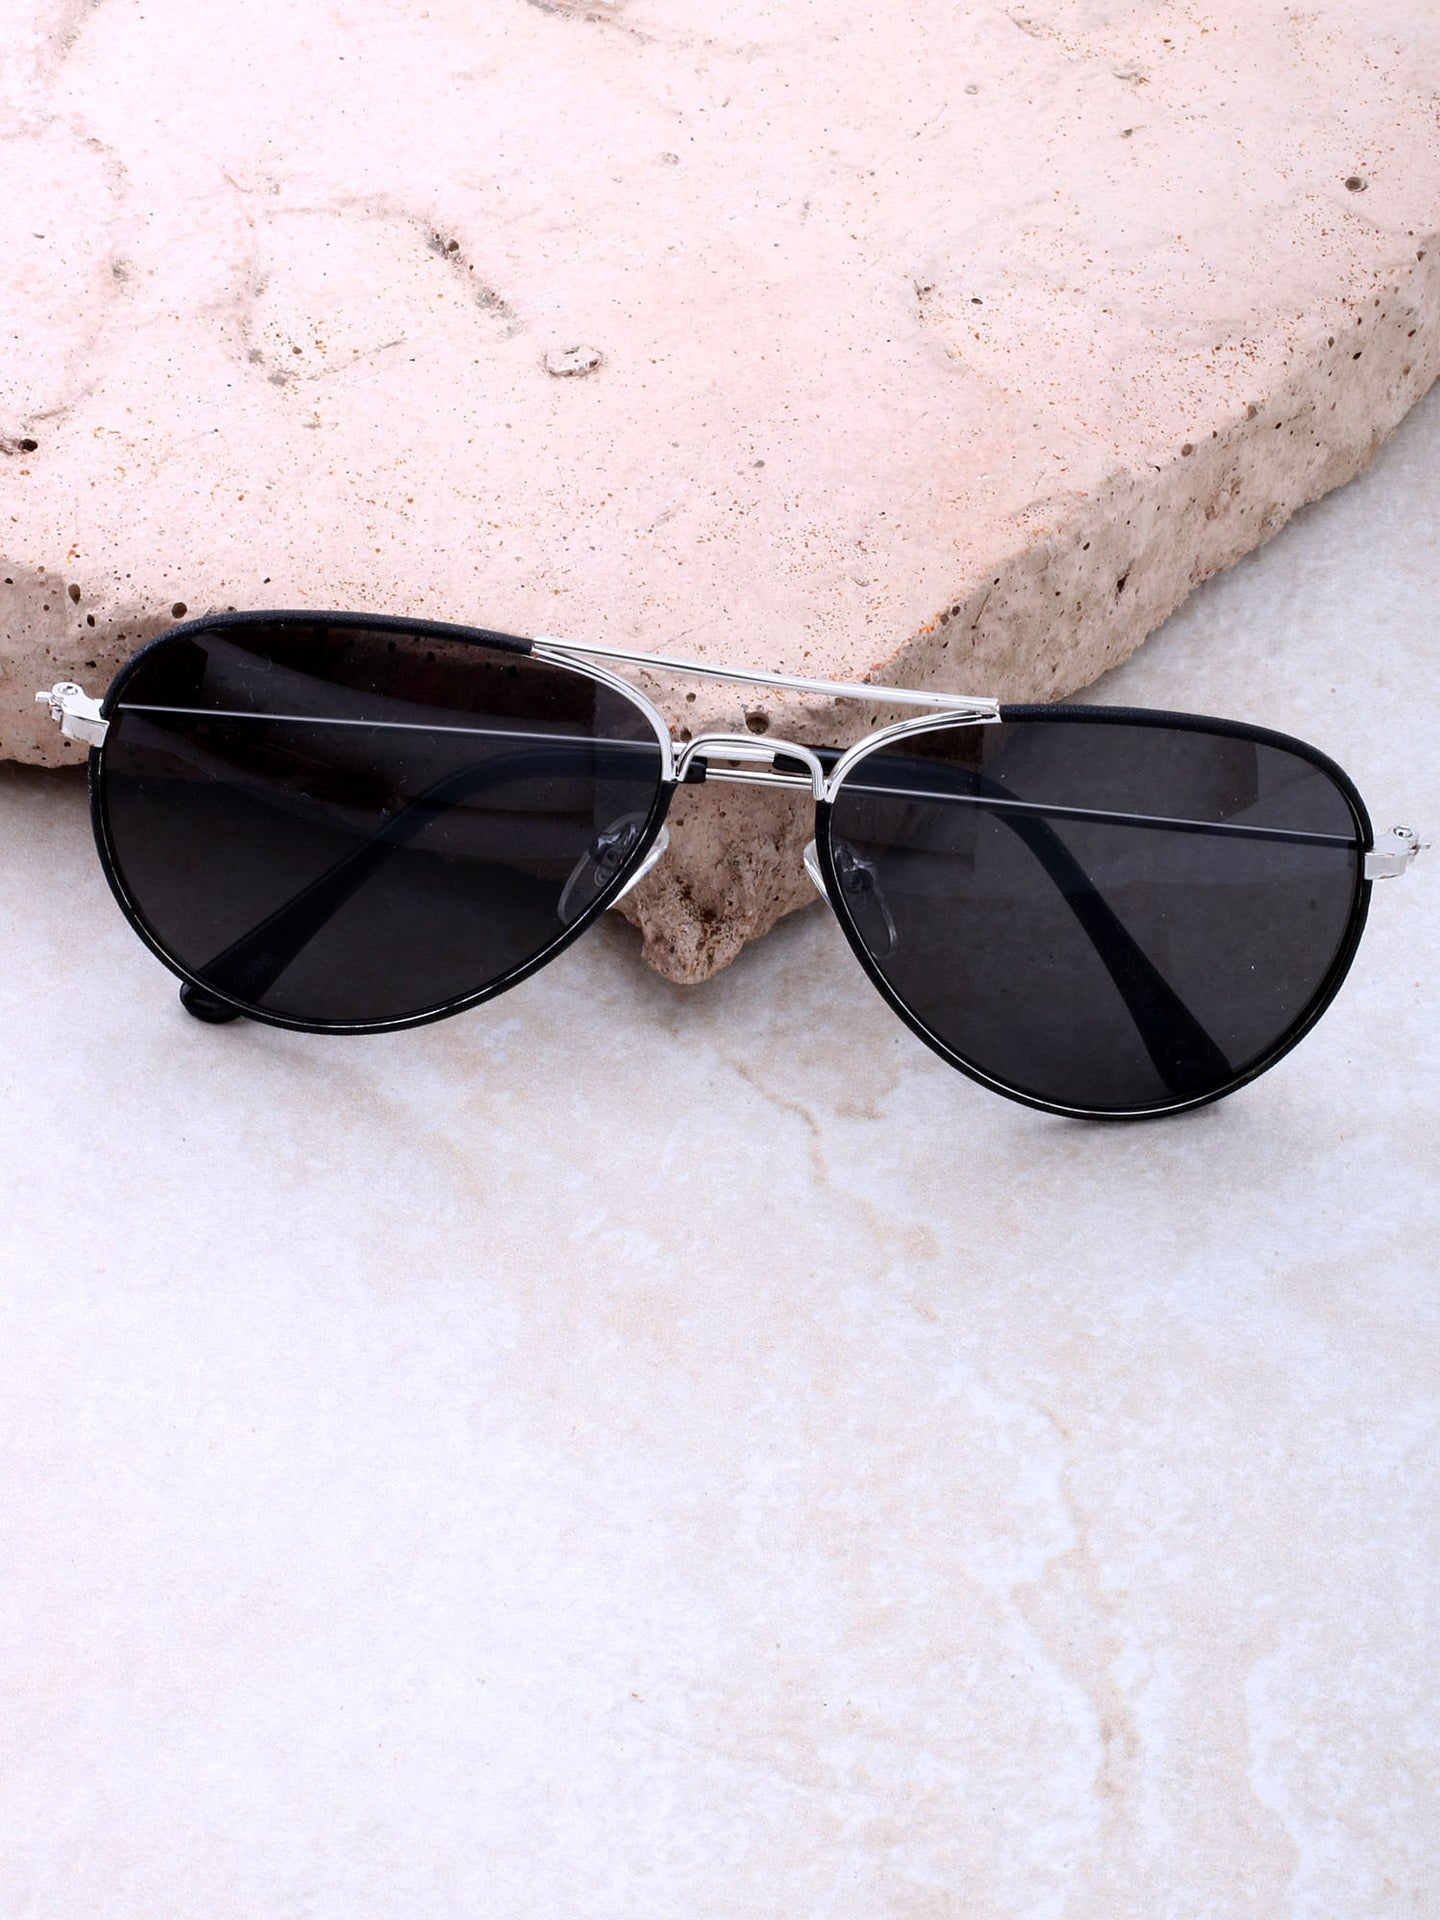 Odyssey Aviator Sunglasses Anarchy Street Black_Black_Silver